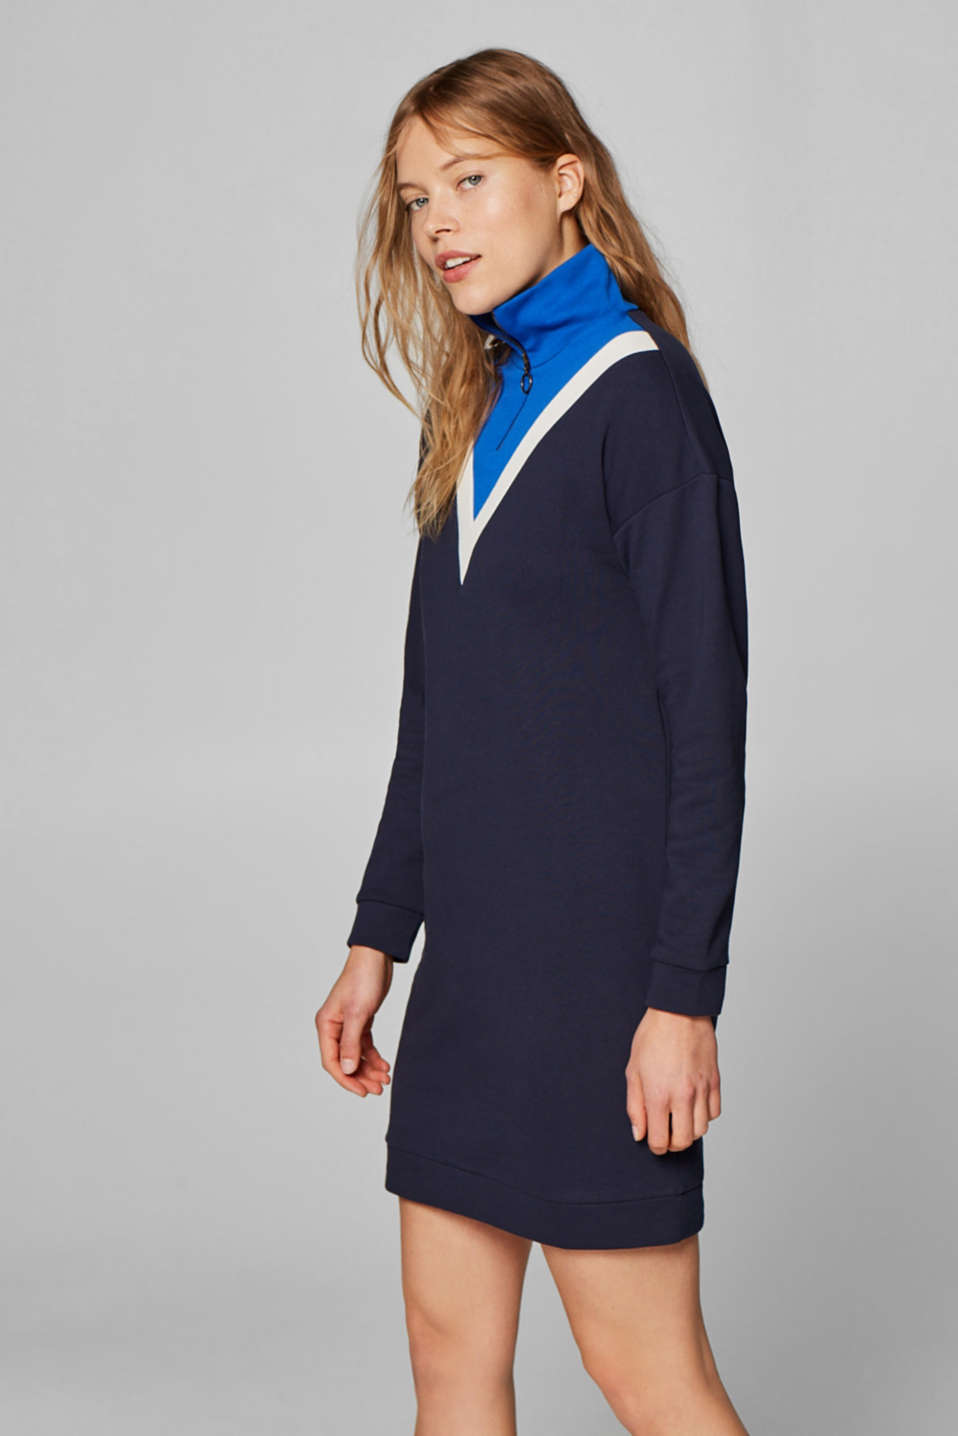 Esprit - Cotton sweatshirt dress with a zip-up collar